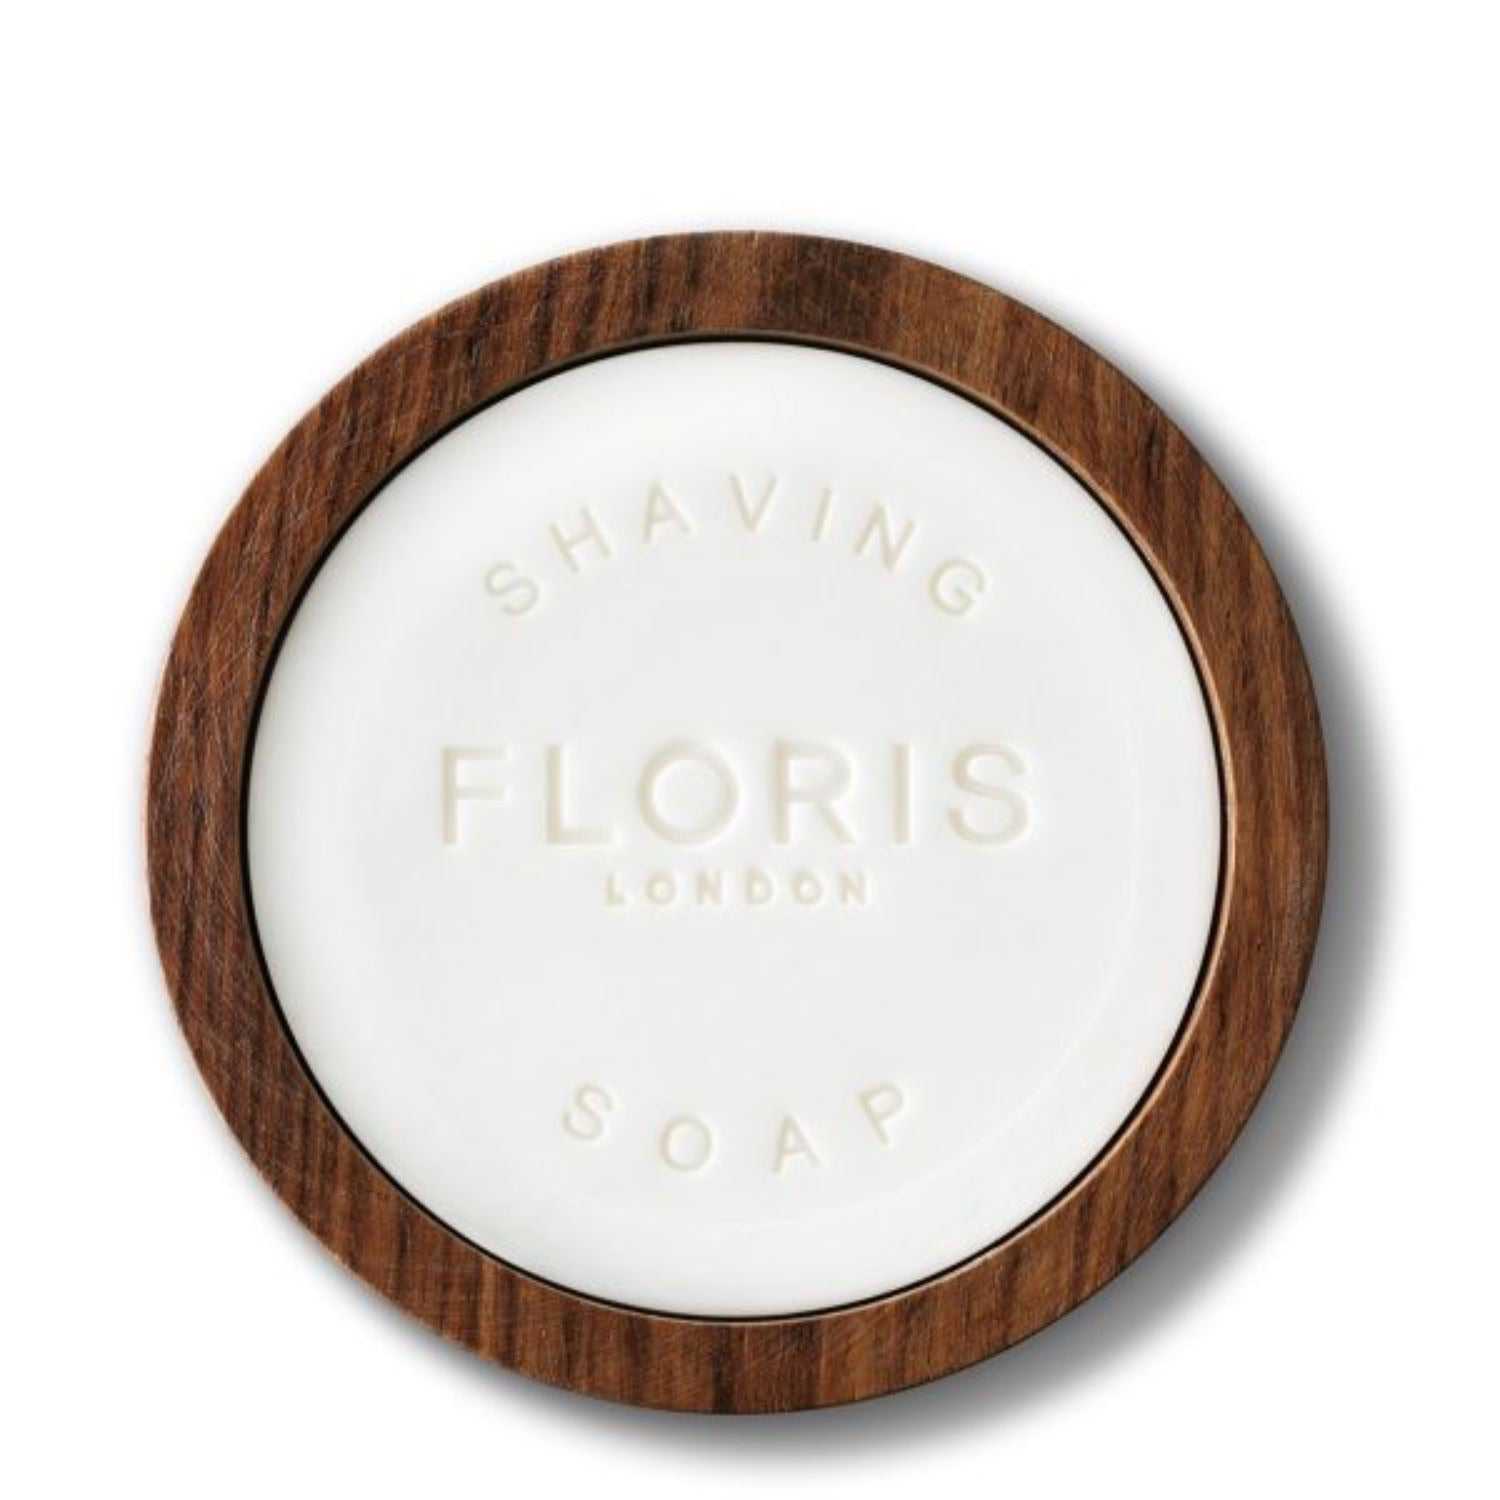 Floris No.89 Shaving Soap & Bowl 100g